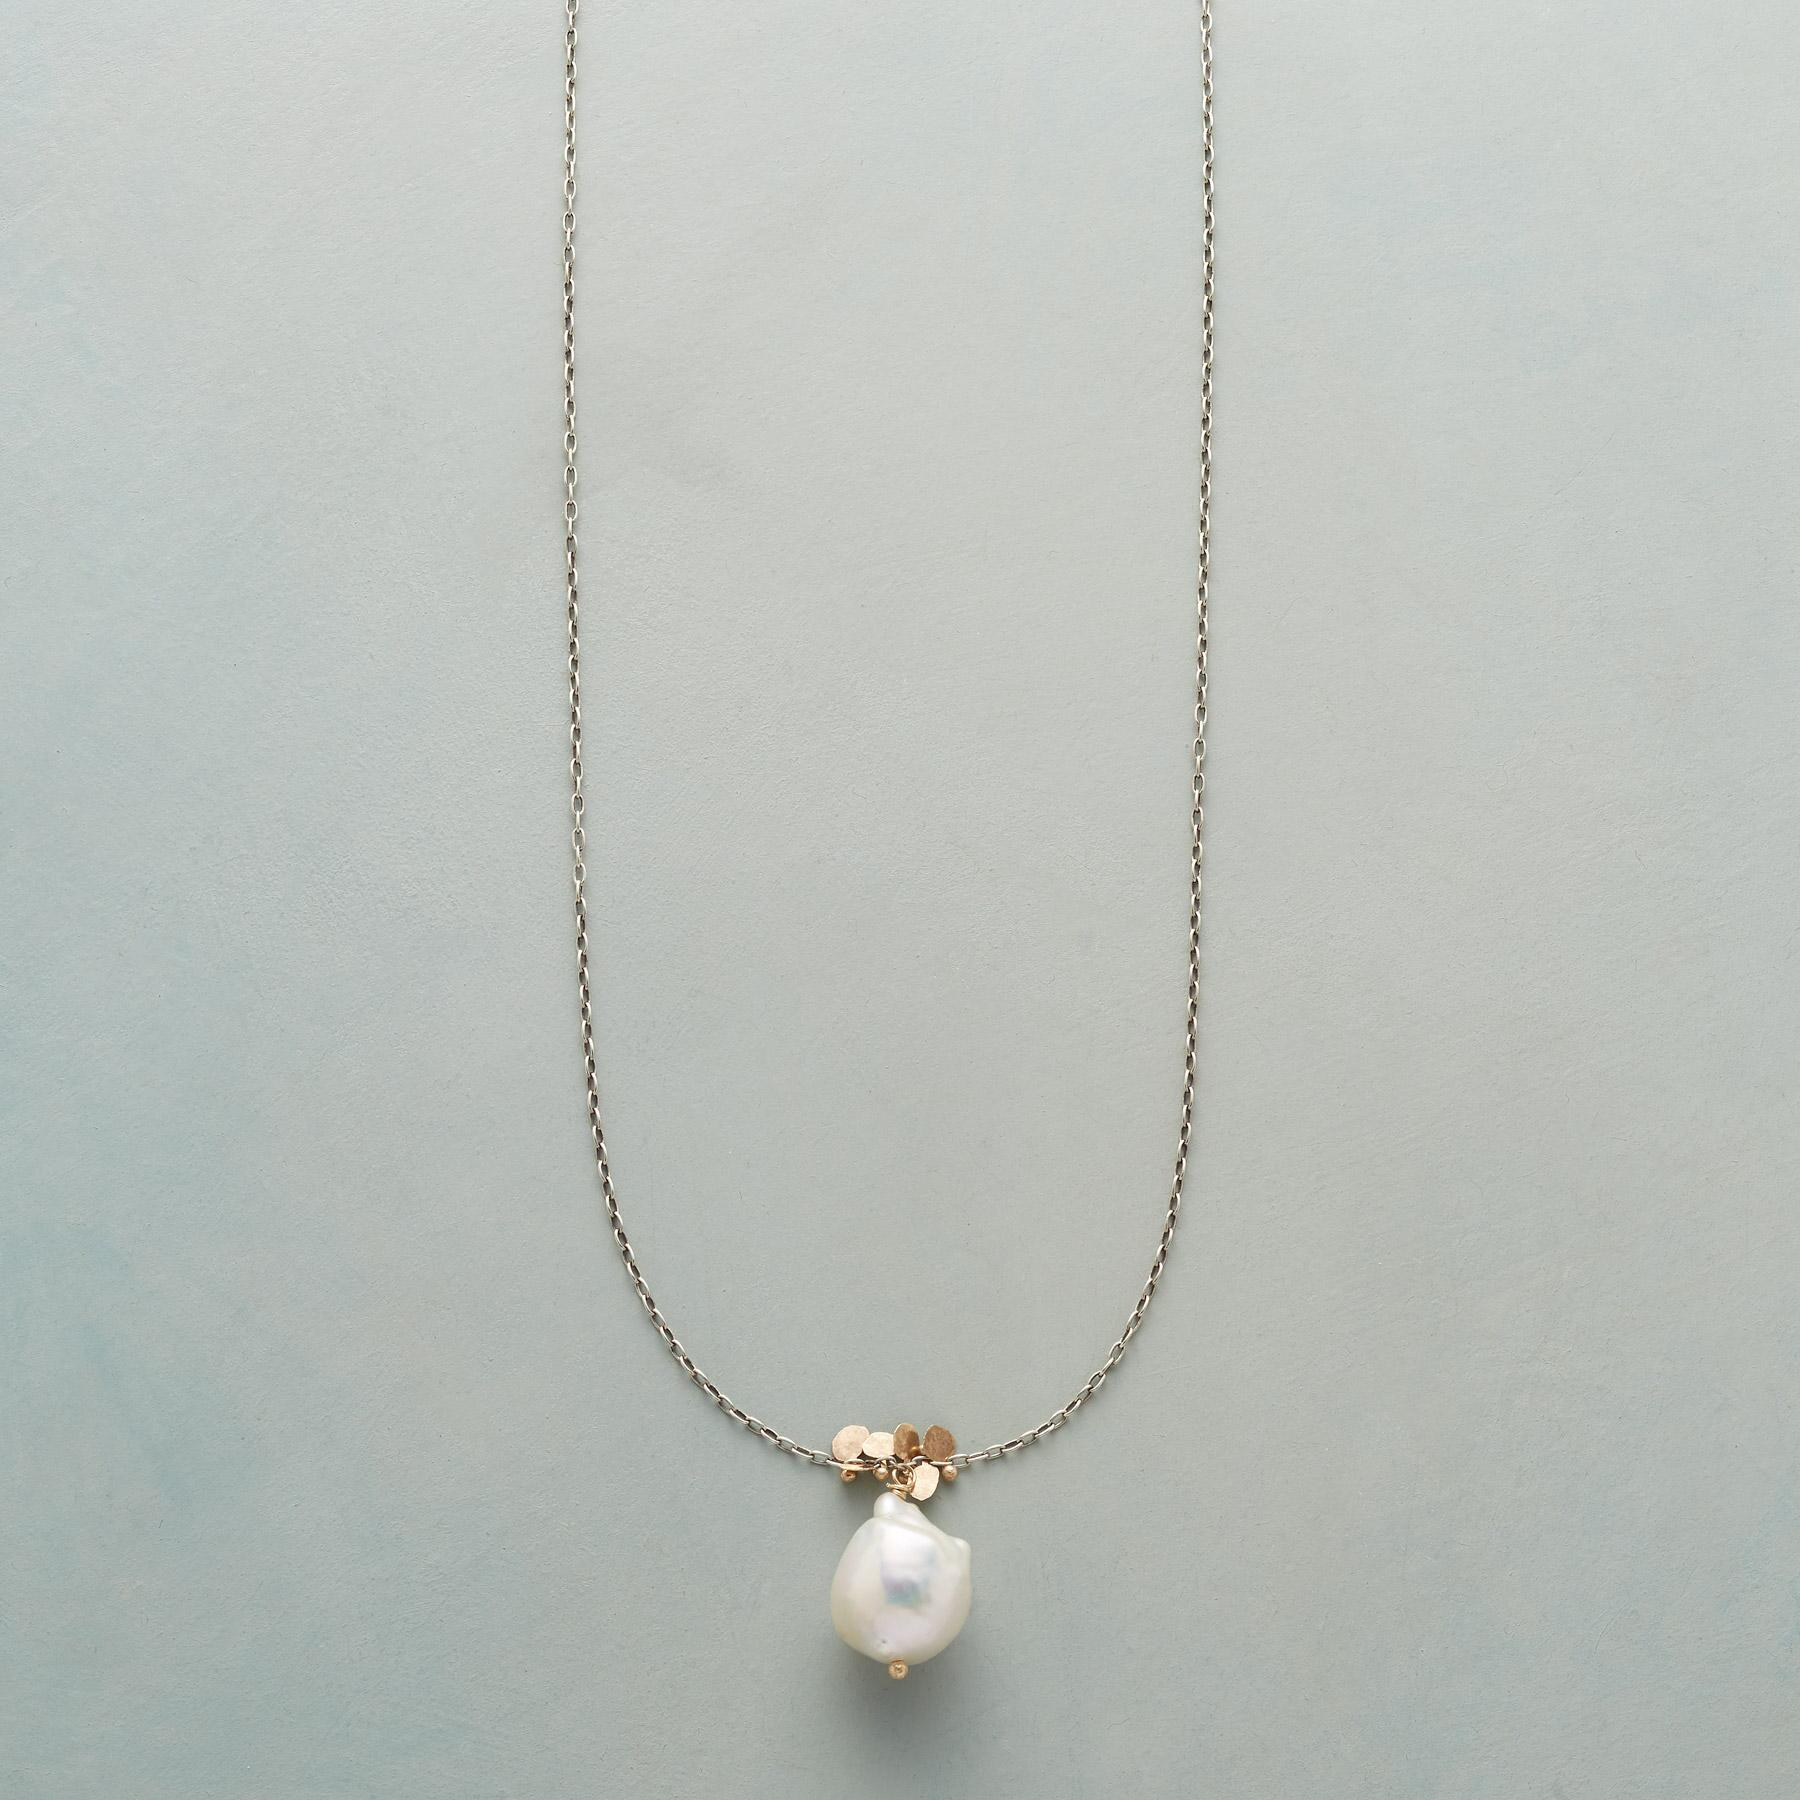 PEARL AND PAILLETTES NECKLACE: View 1